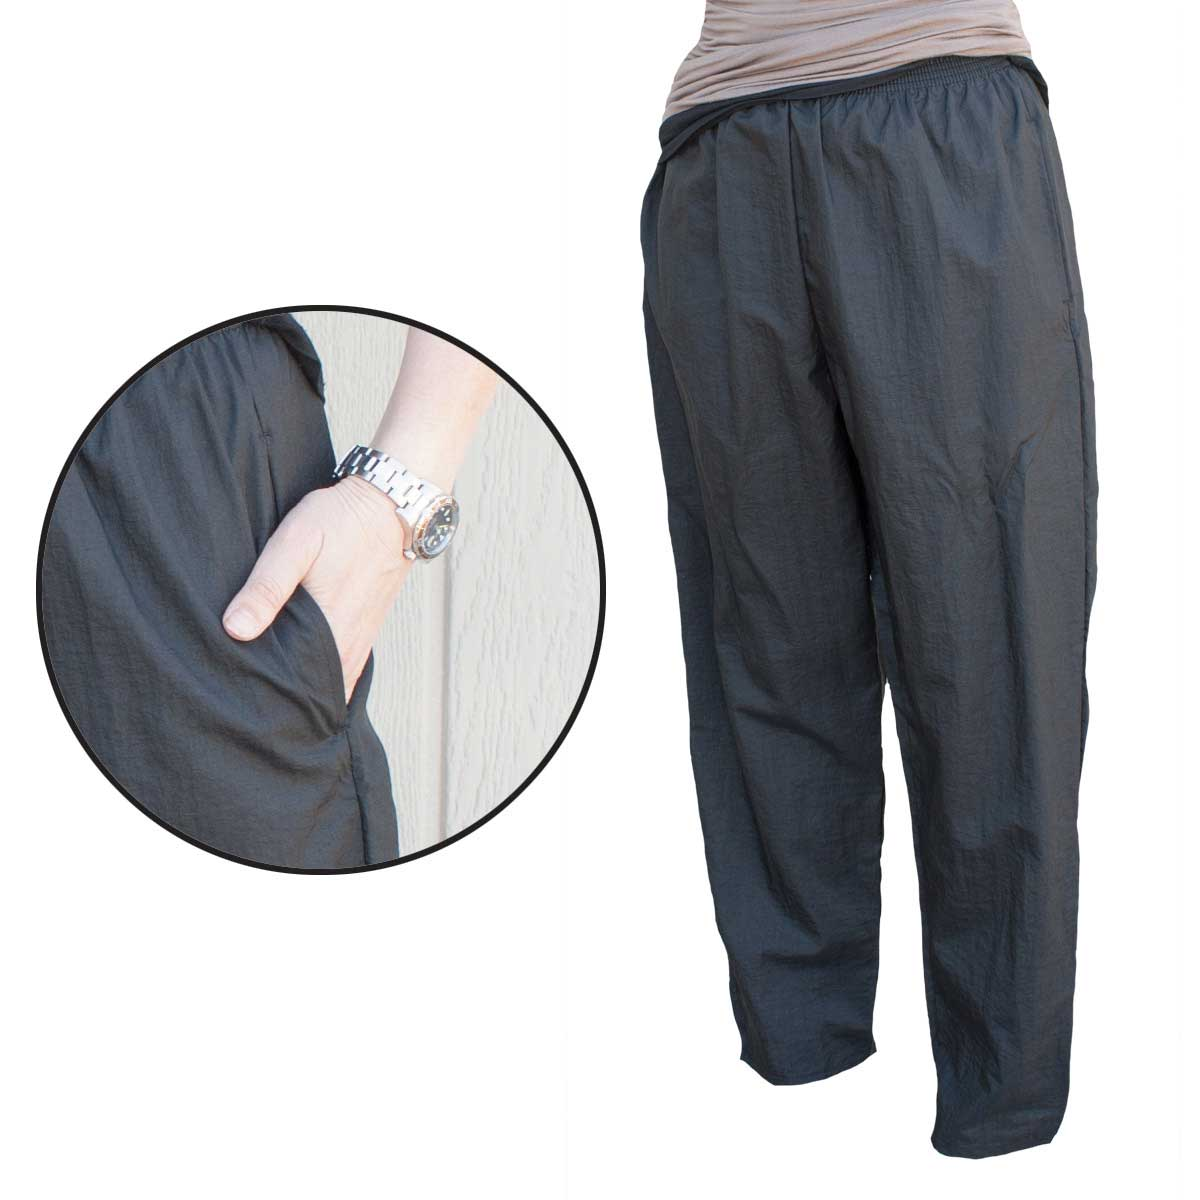 Paw Brothers Pants With Pockets 2X-Large - for Veterinarians or Groomers